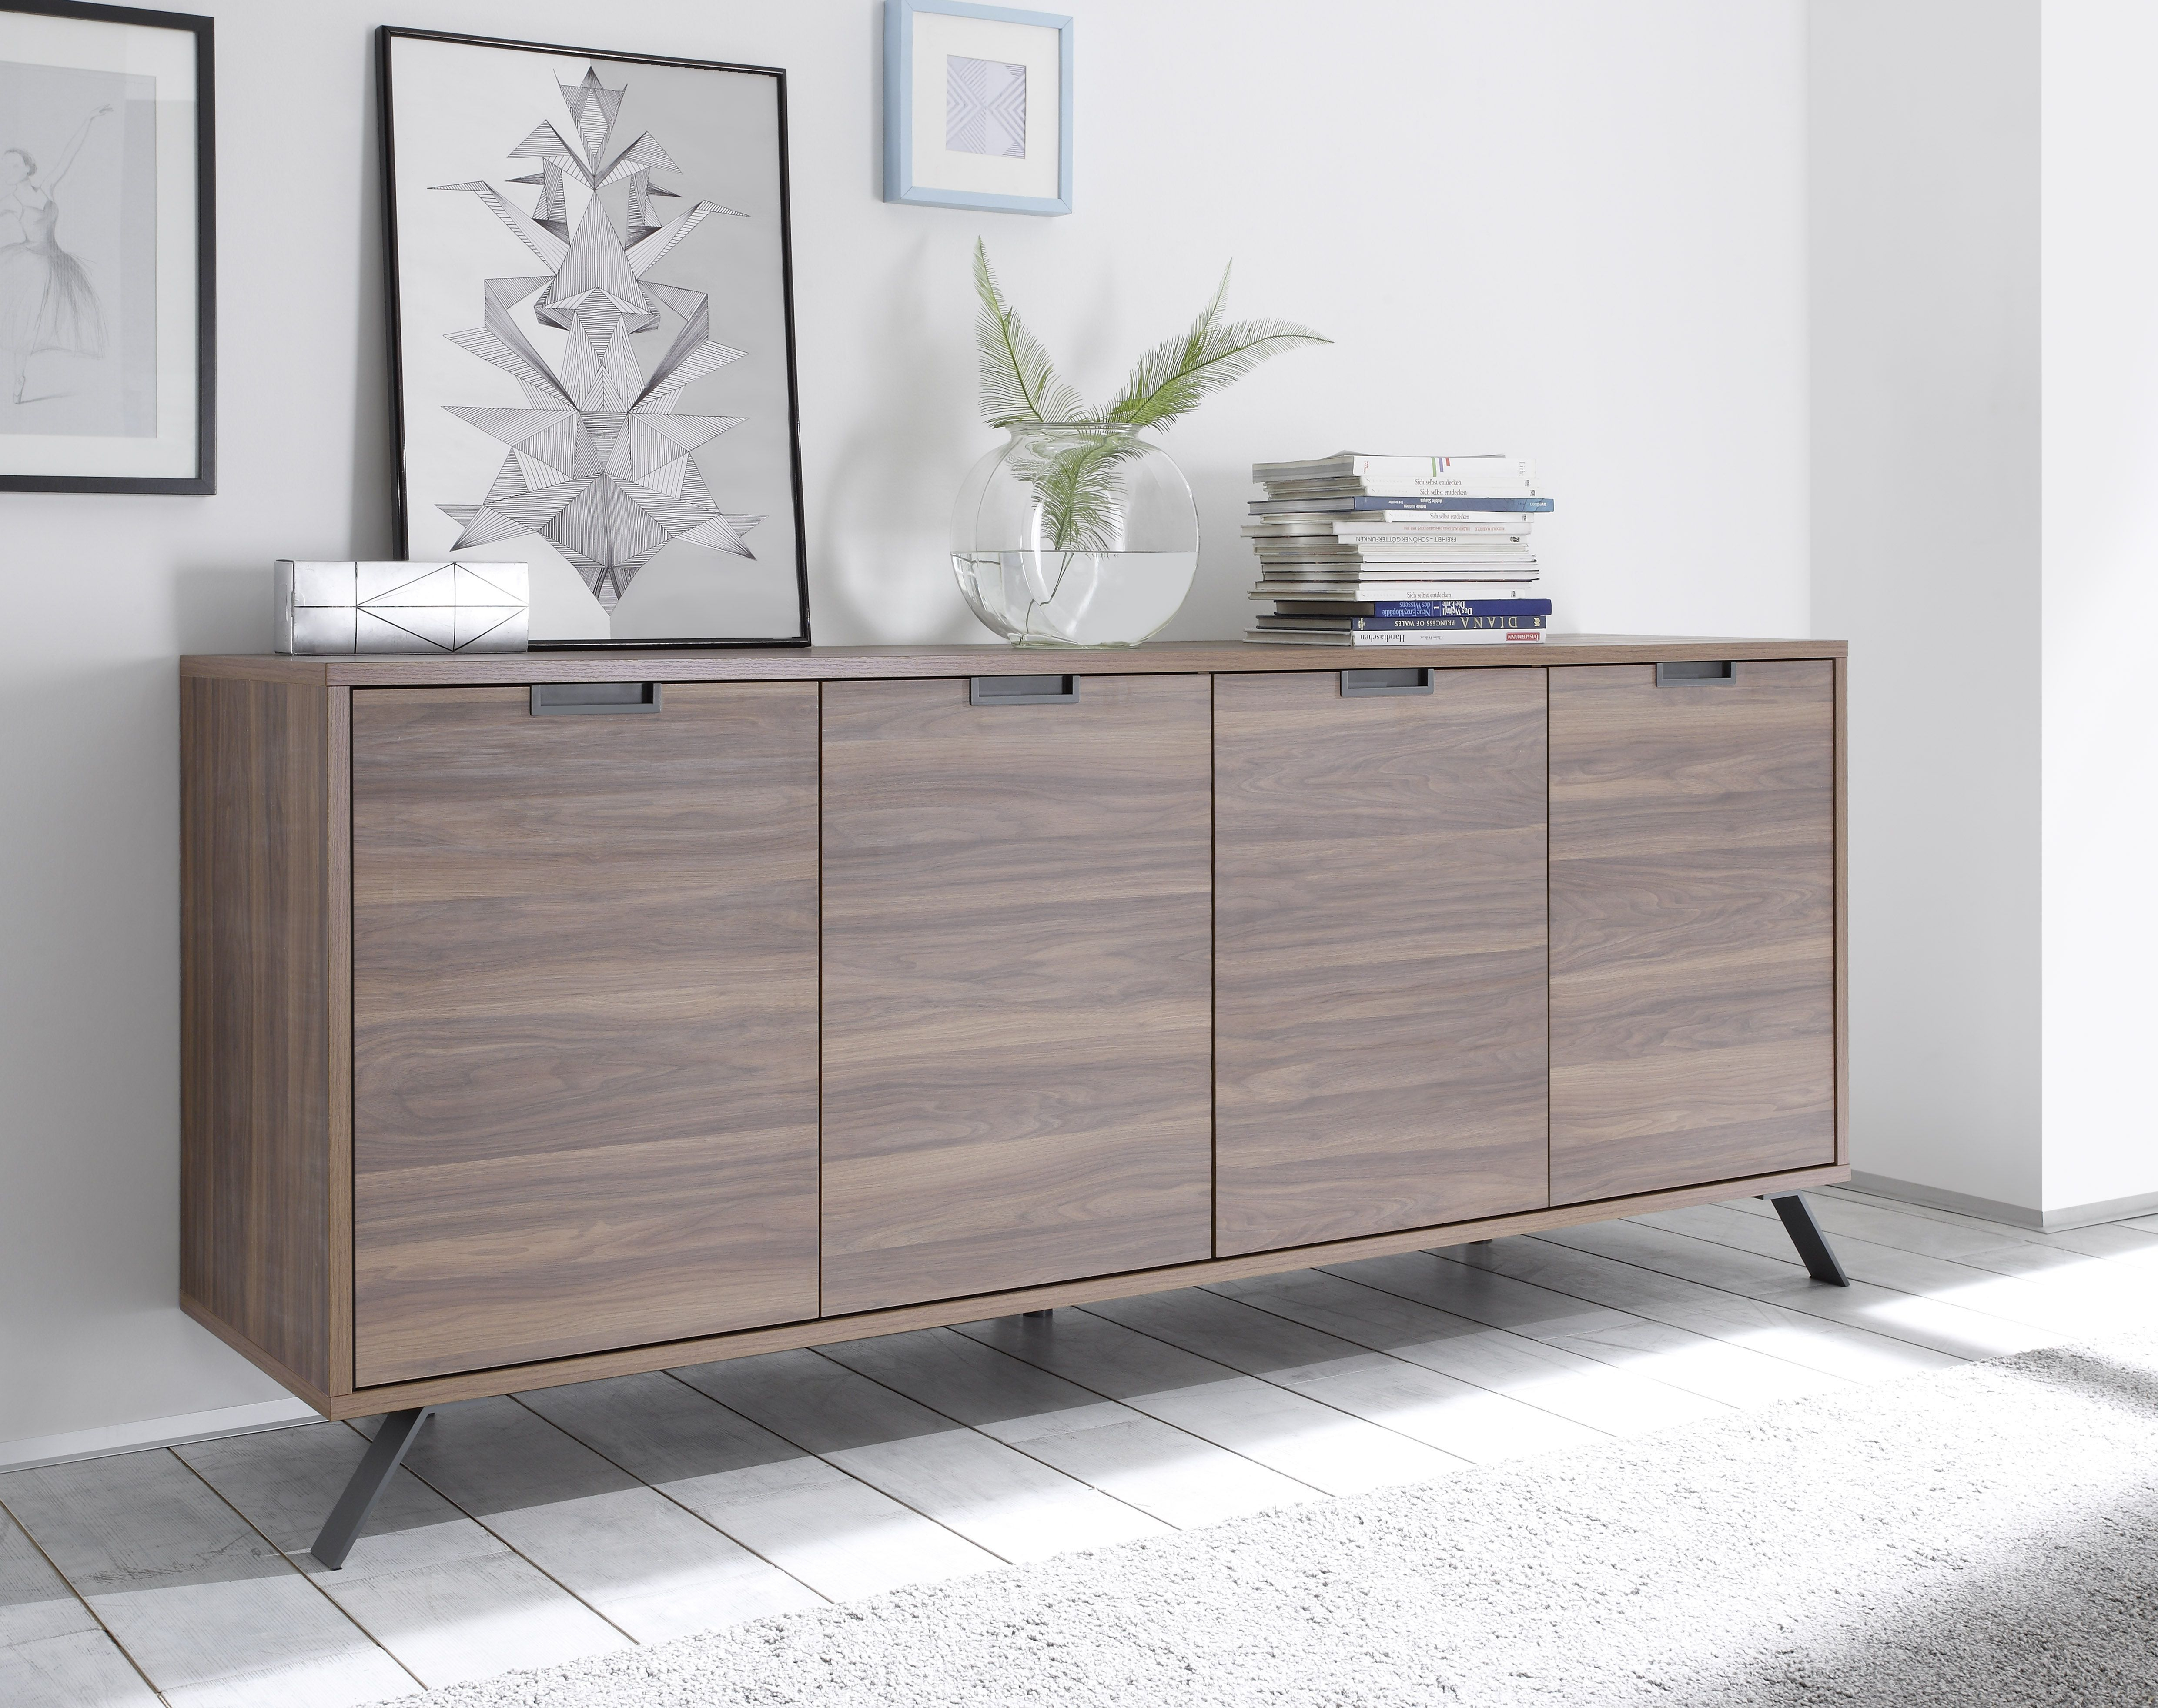 Remington Sideboard In 2019 | Home | Credenza, Sideboard Inside Remington Sideboards (Gallery 6 of 30)